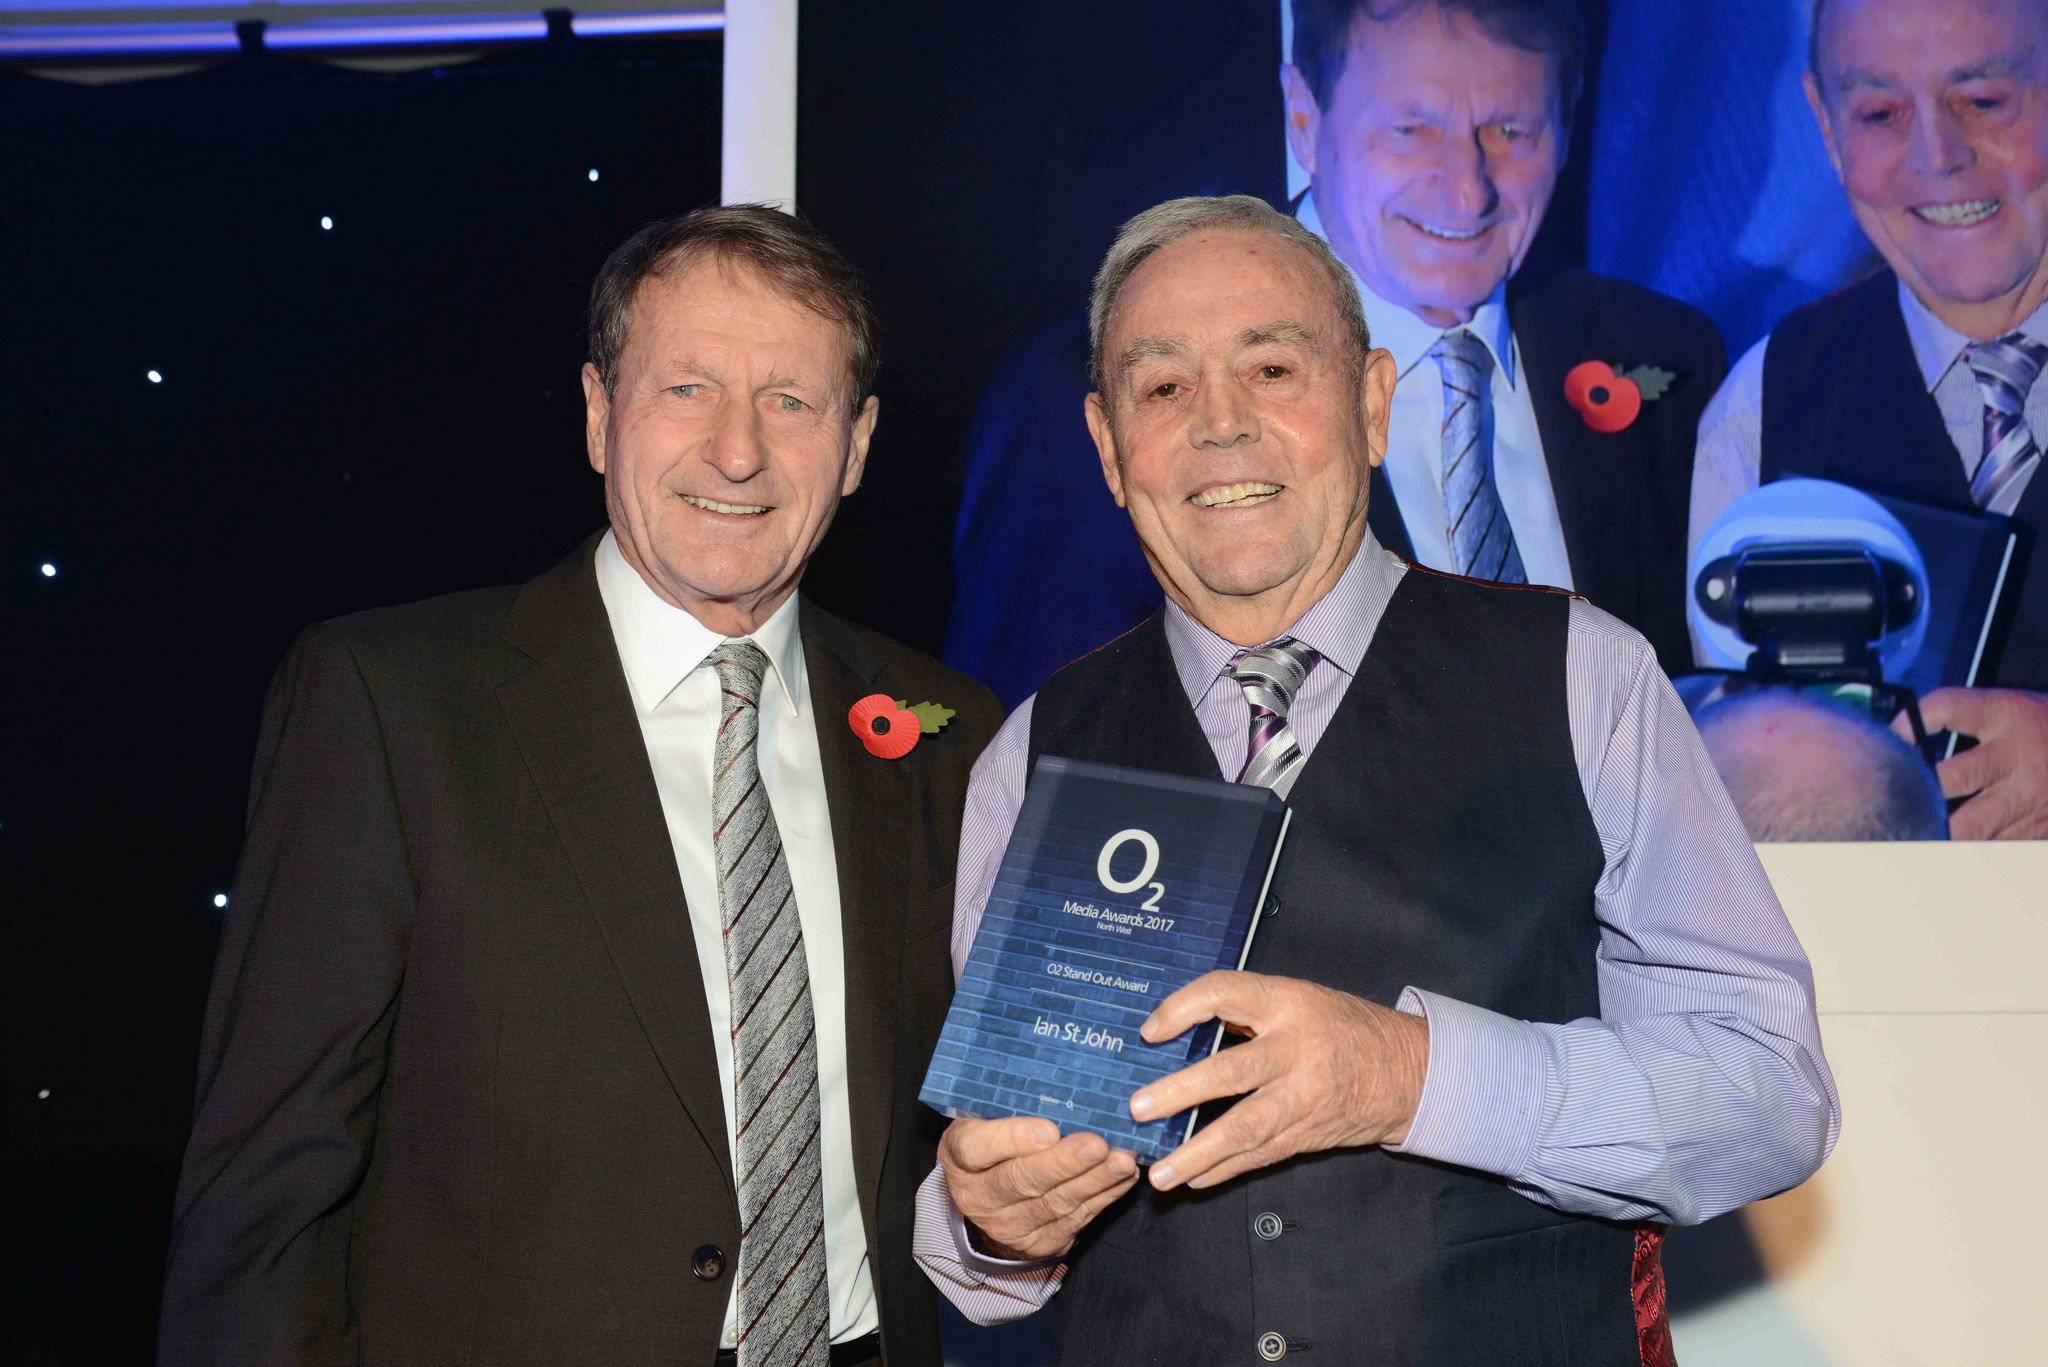 Ian St John, right, on stage with his former Liverpool FC teammate Roger Hunt at the 02 North West Media Awards at Manchester City's Etihad Stadium